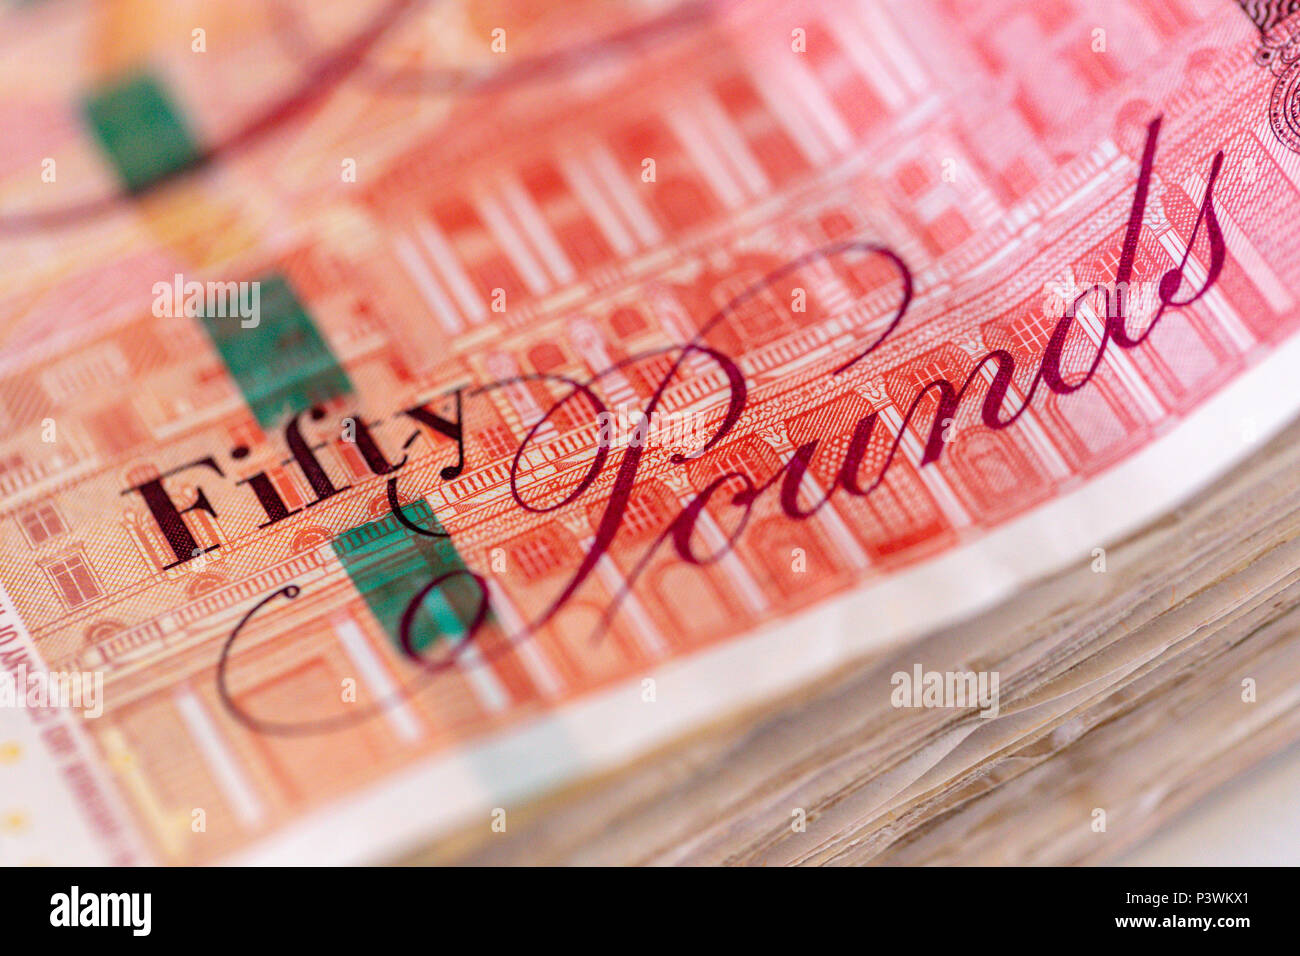 Background of a large pile of used fifty UK pound bank notes sterling Stock Photo